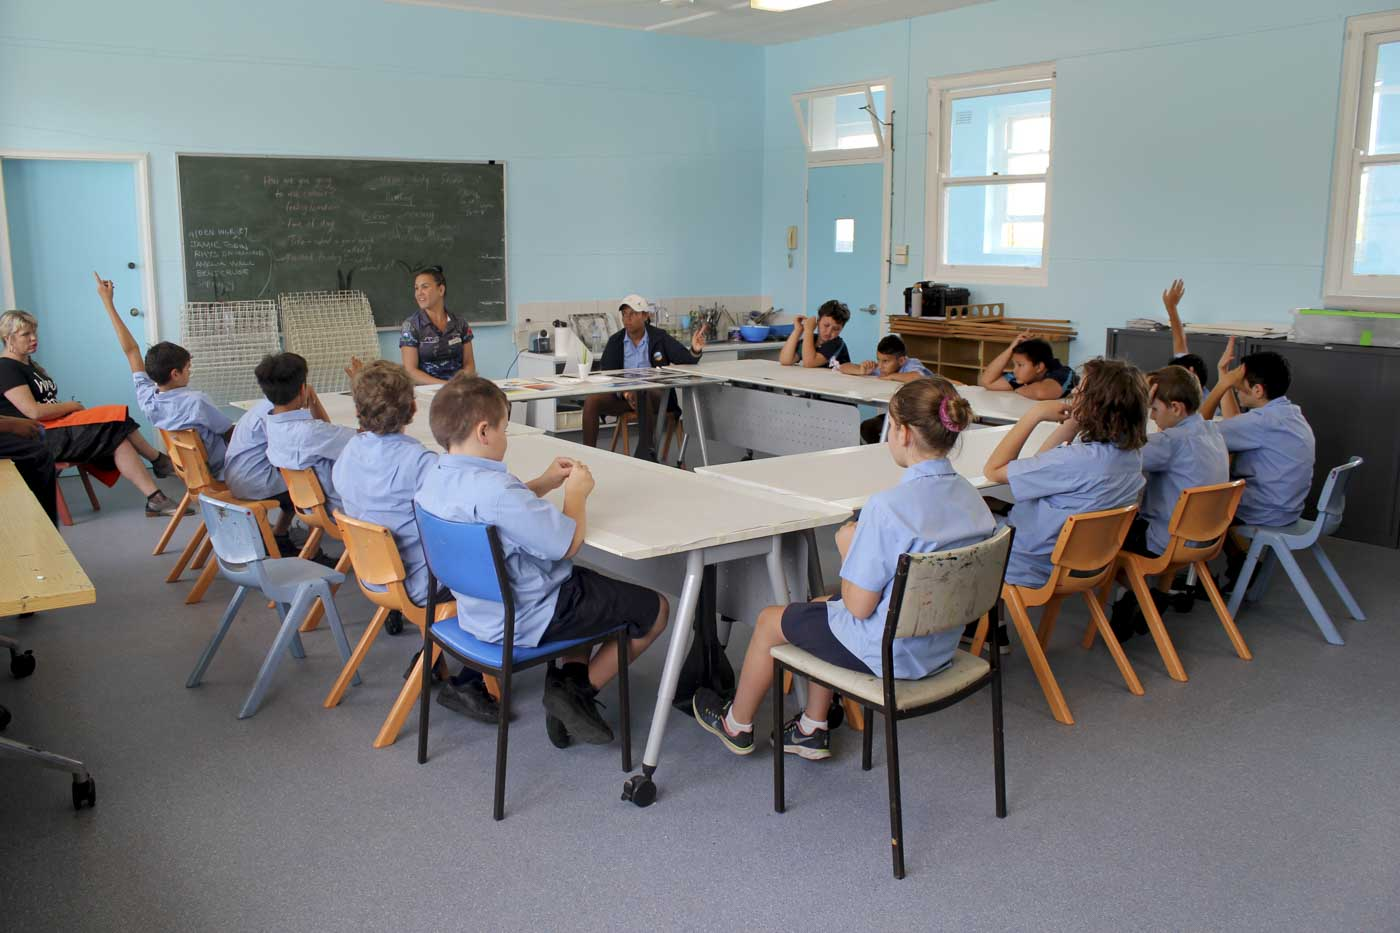 Primary school students and a female teacher are sitting around desks and having a discussion. - click to view larger image